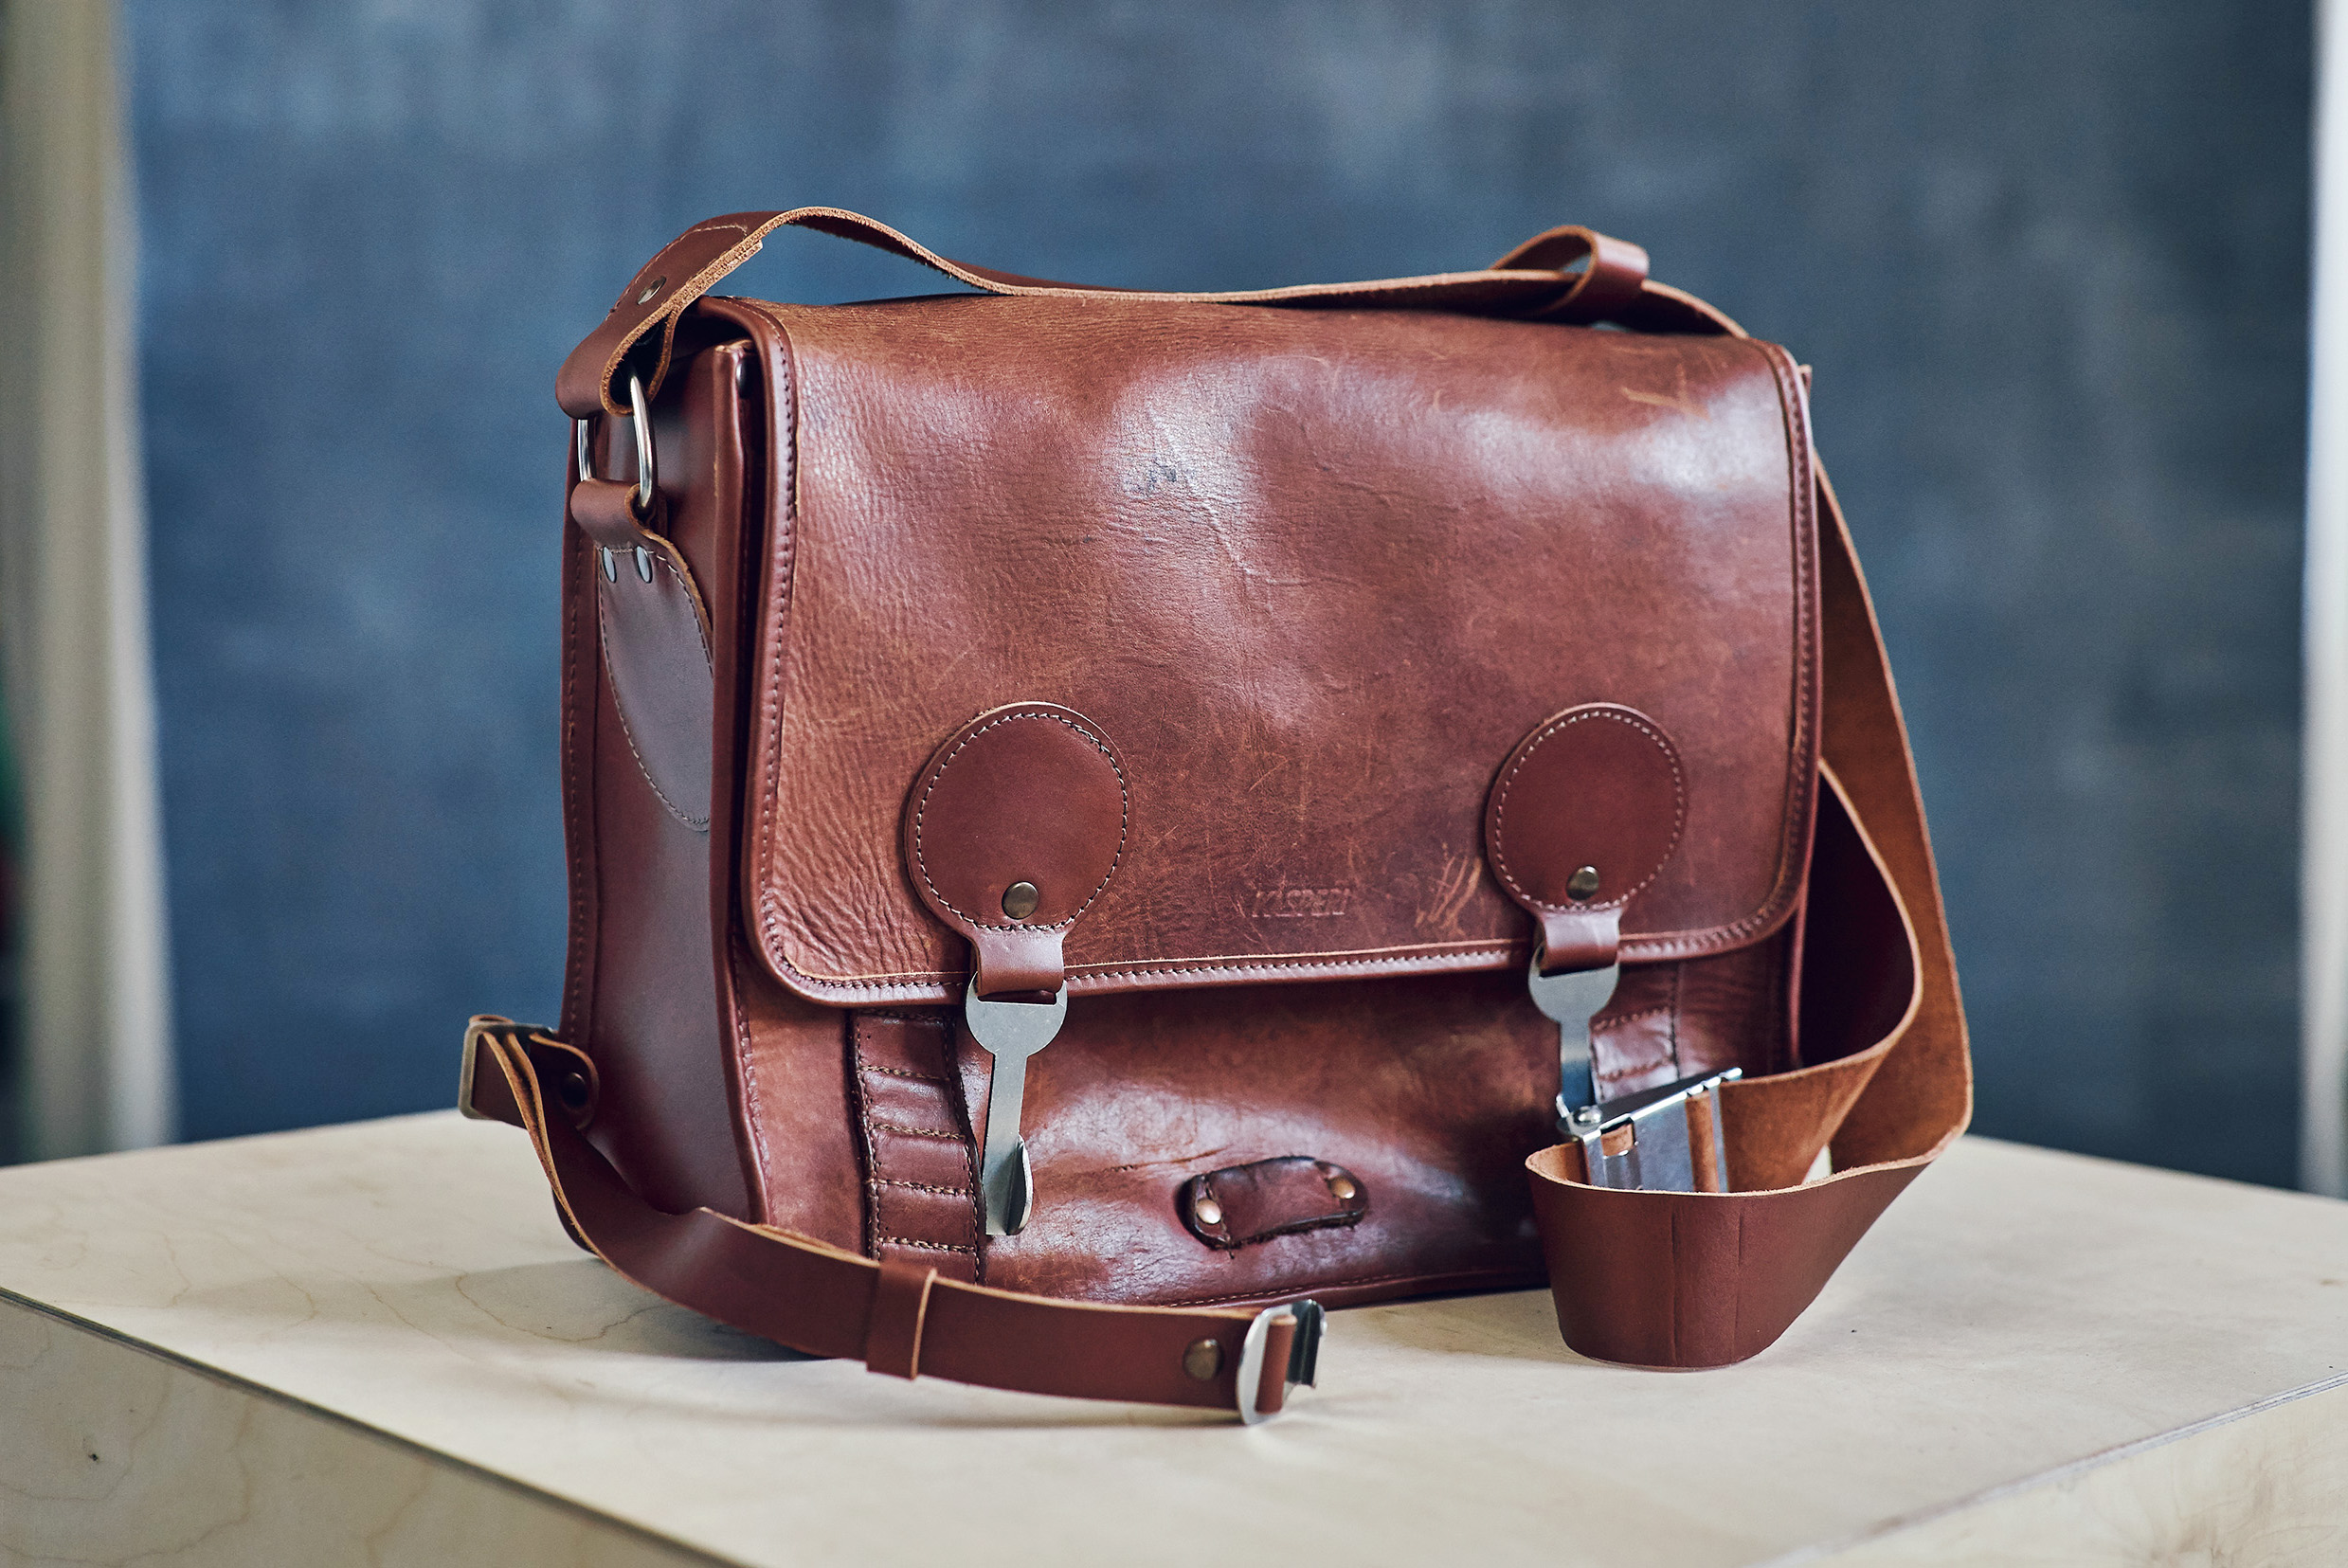 A ten-year-old daily used KASPERI Shoulder bag, refurbished by us.